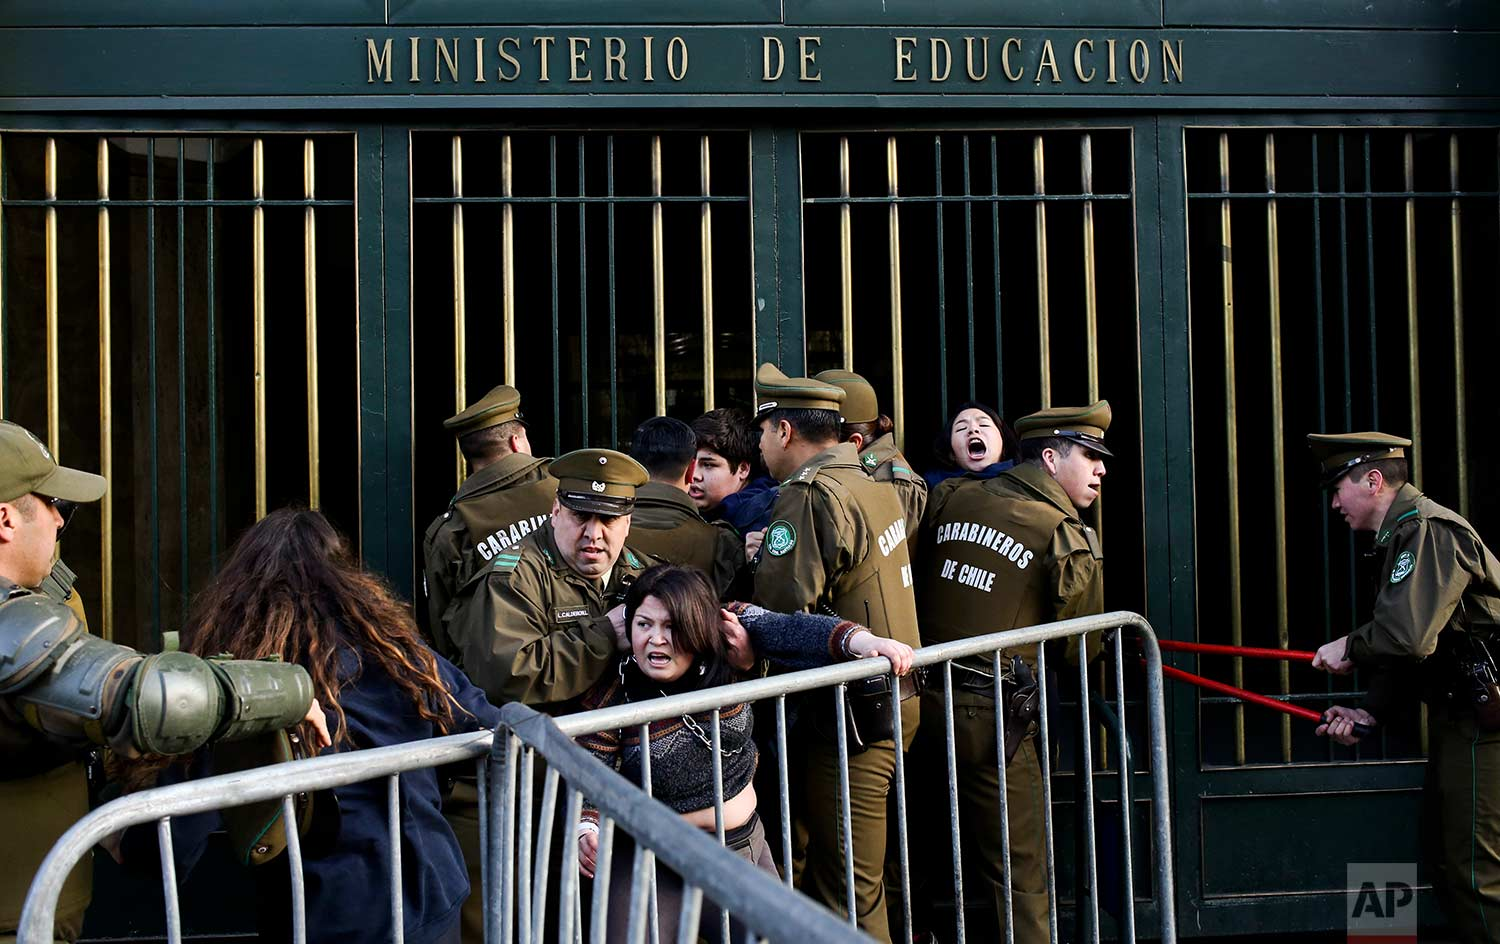 National Police remove protesting high school students who chained themselves to the Ministry of Education building in Santiago, Chile, Wednesday, Aug. 23, 2017. The students are demanding education reform, including free access to school for all ages. (AP Photo/Esteban Felix)